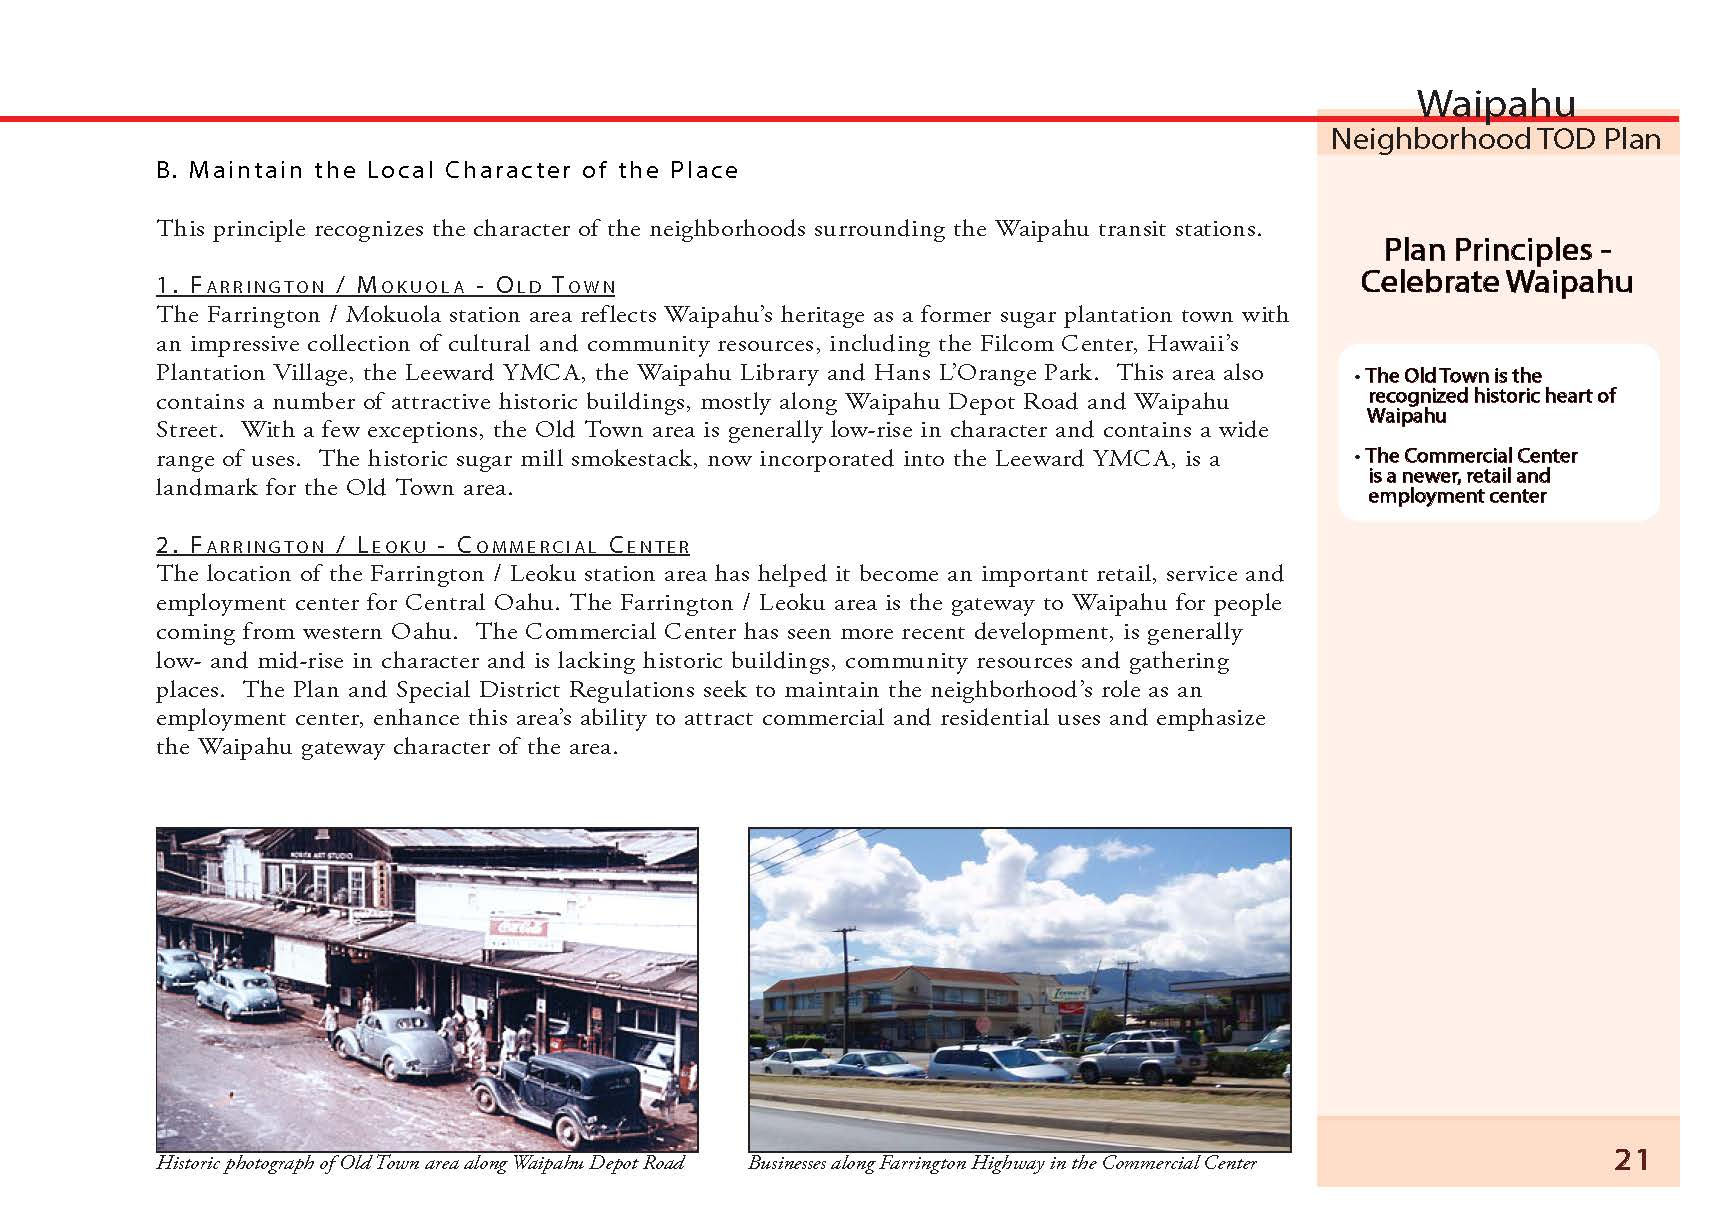 160513_Waipahu Neighborhood TOD Plan_Page_027.jpg